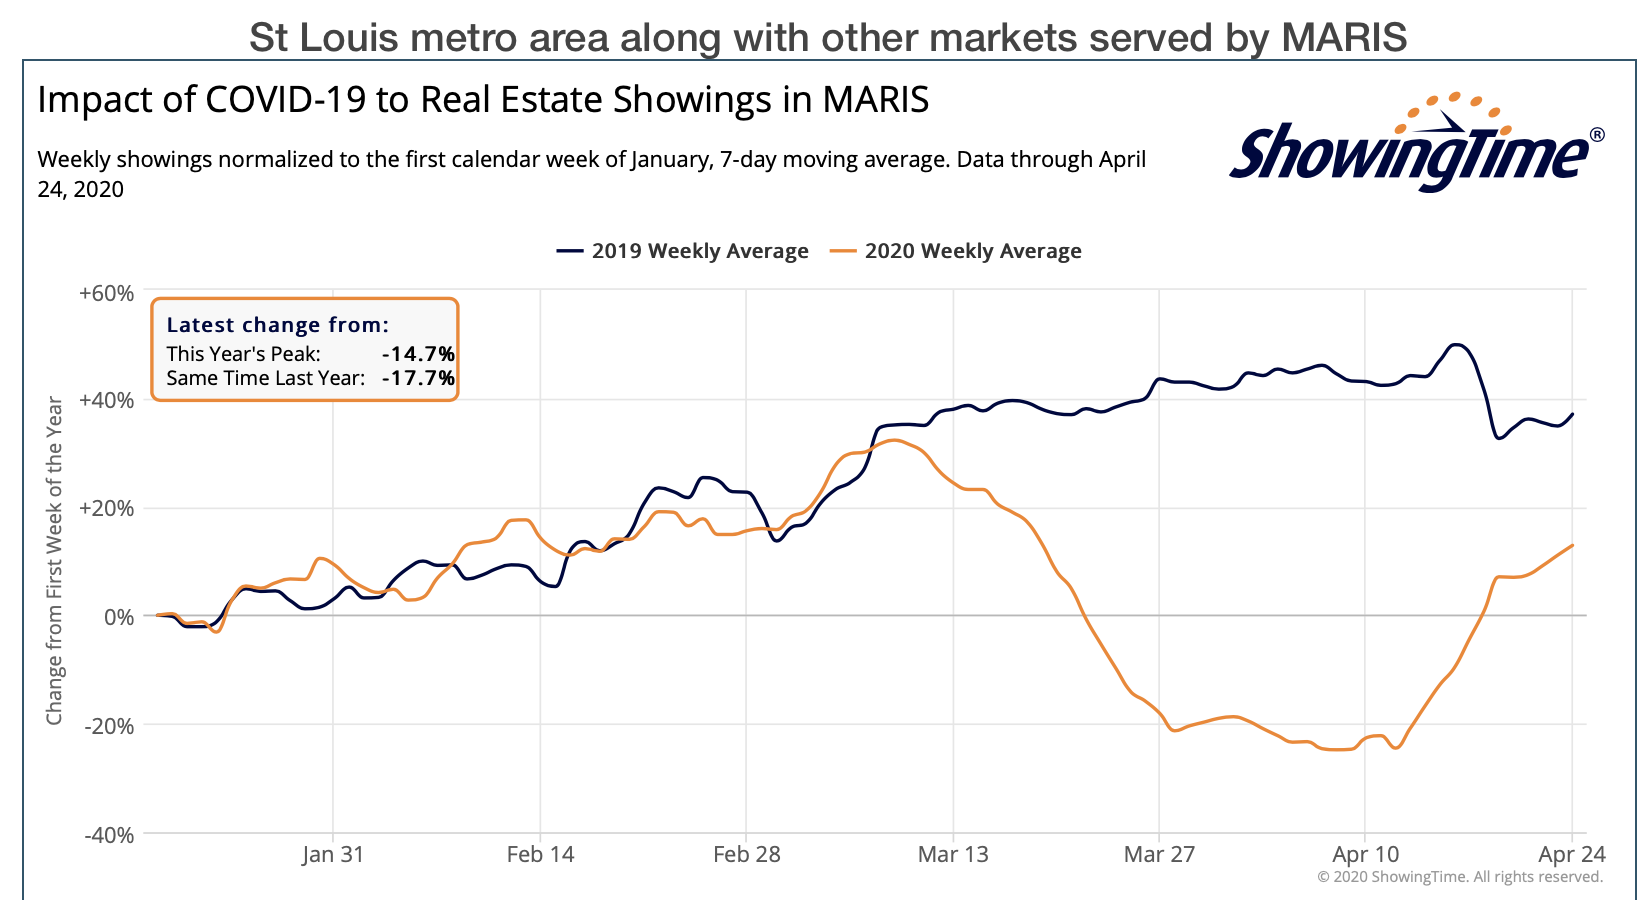 Showings Of Listings in the St Louis metro area